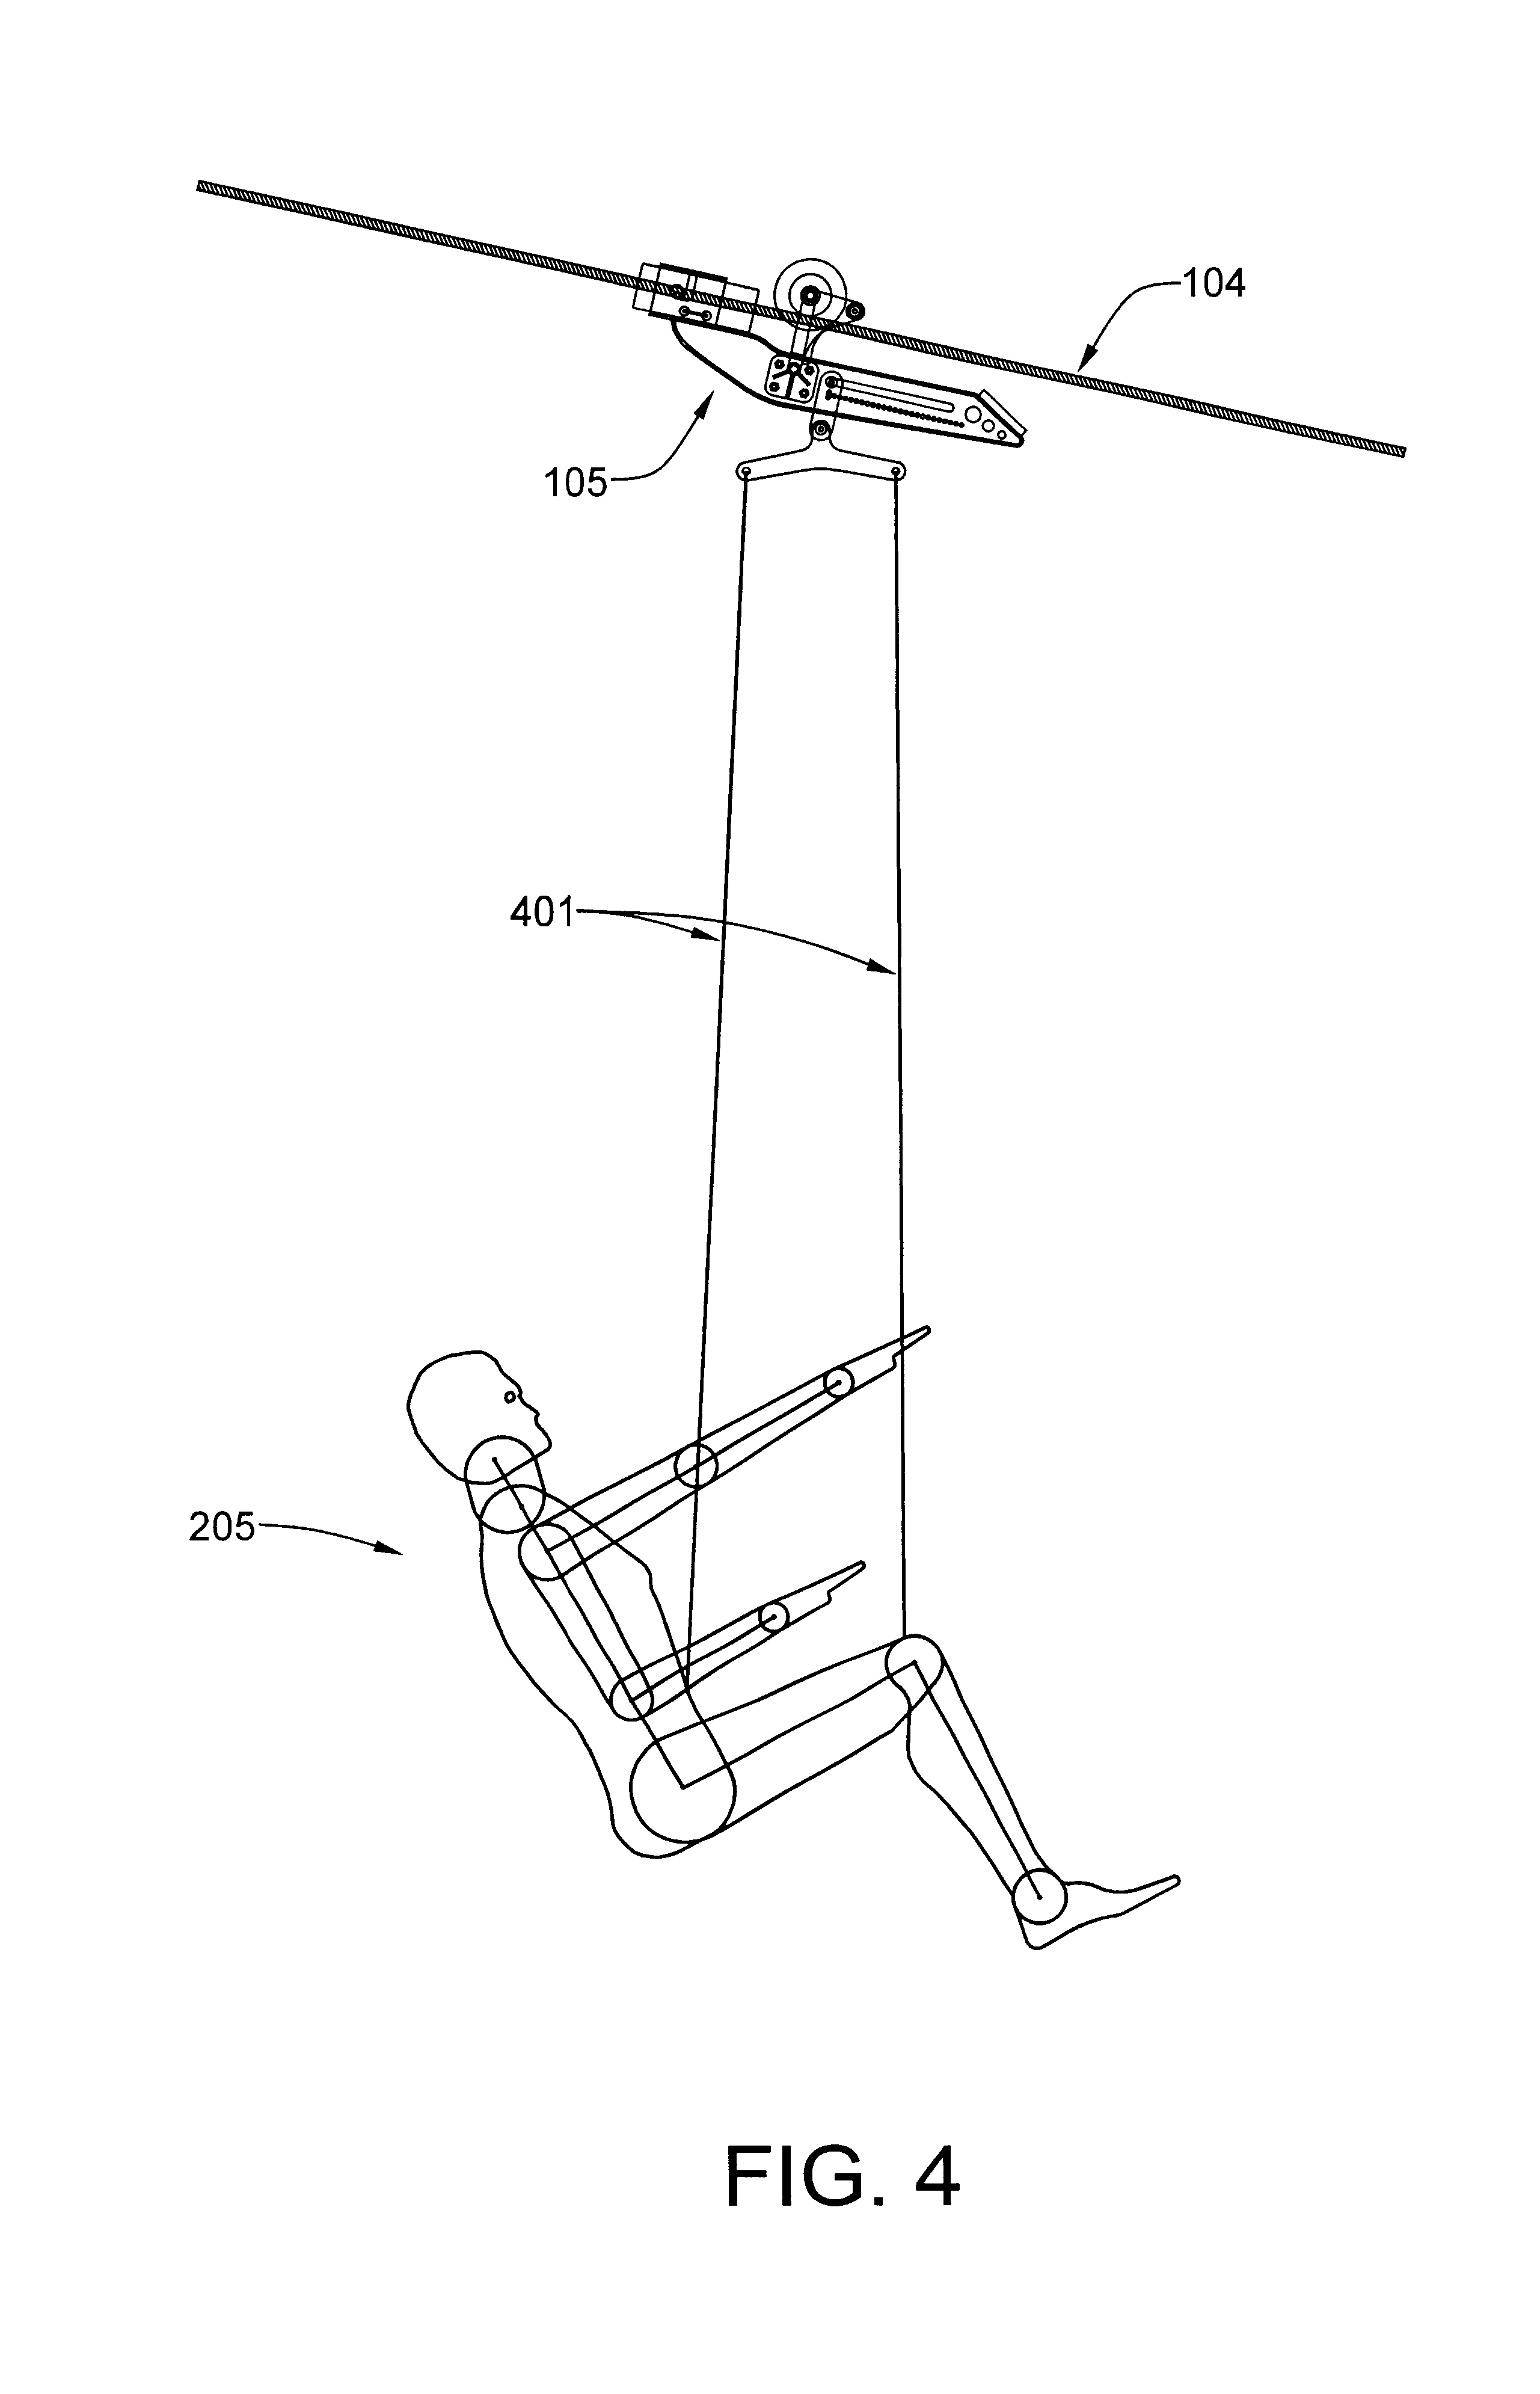 D Line Drawings Zip : Patent us downhill zip line thrill ride system